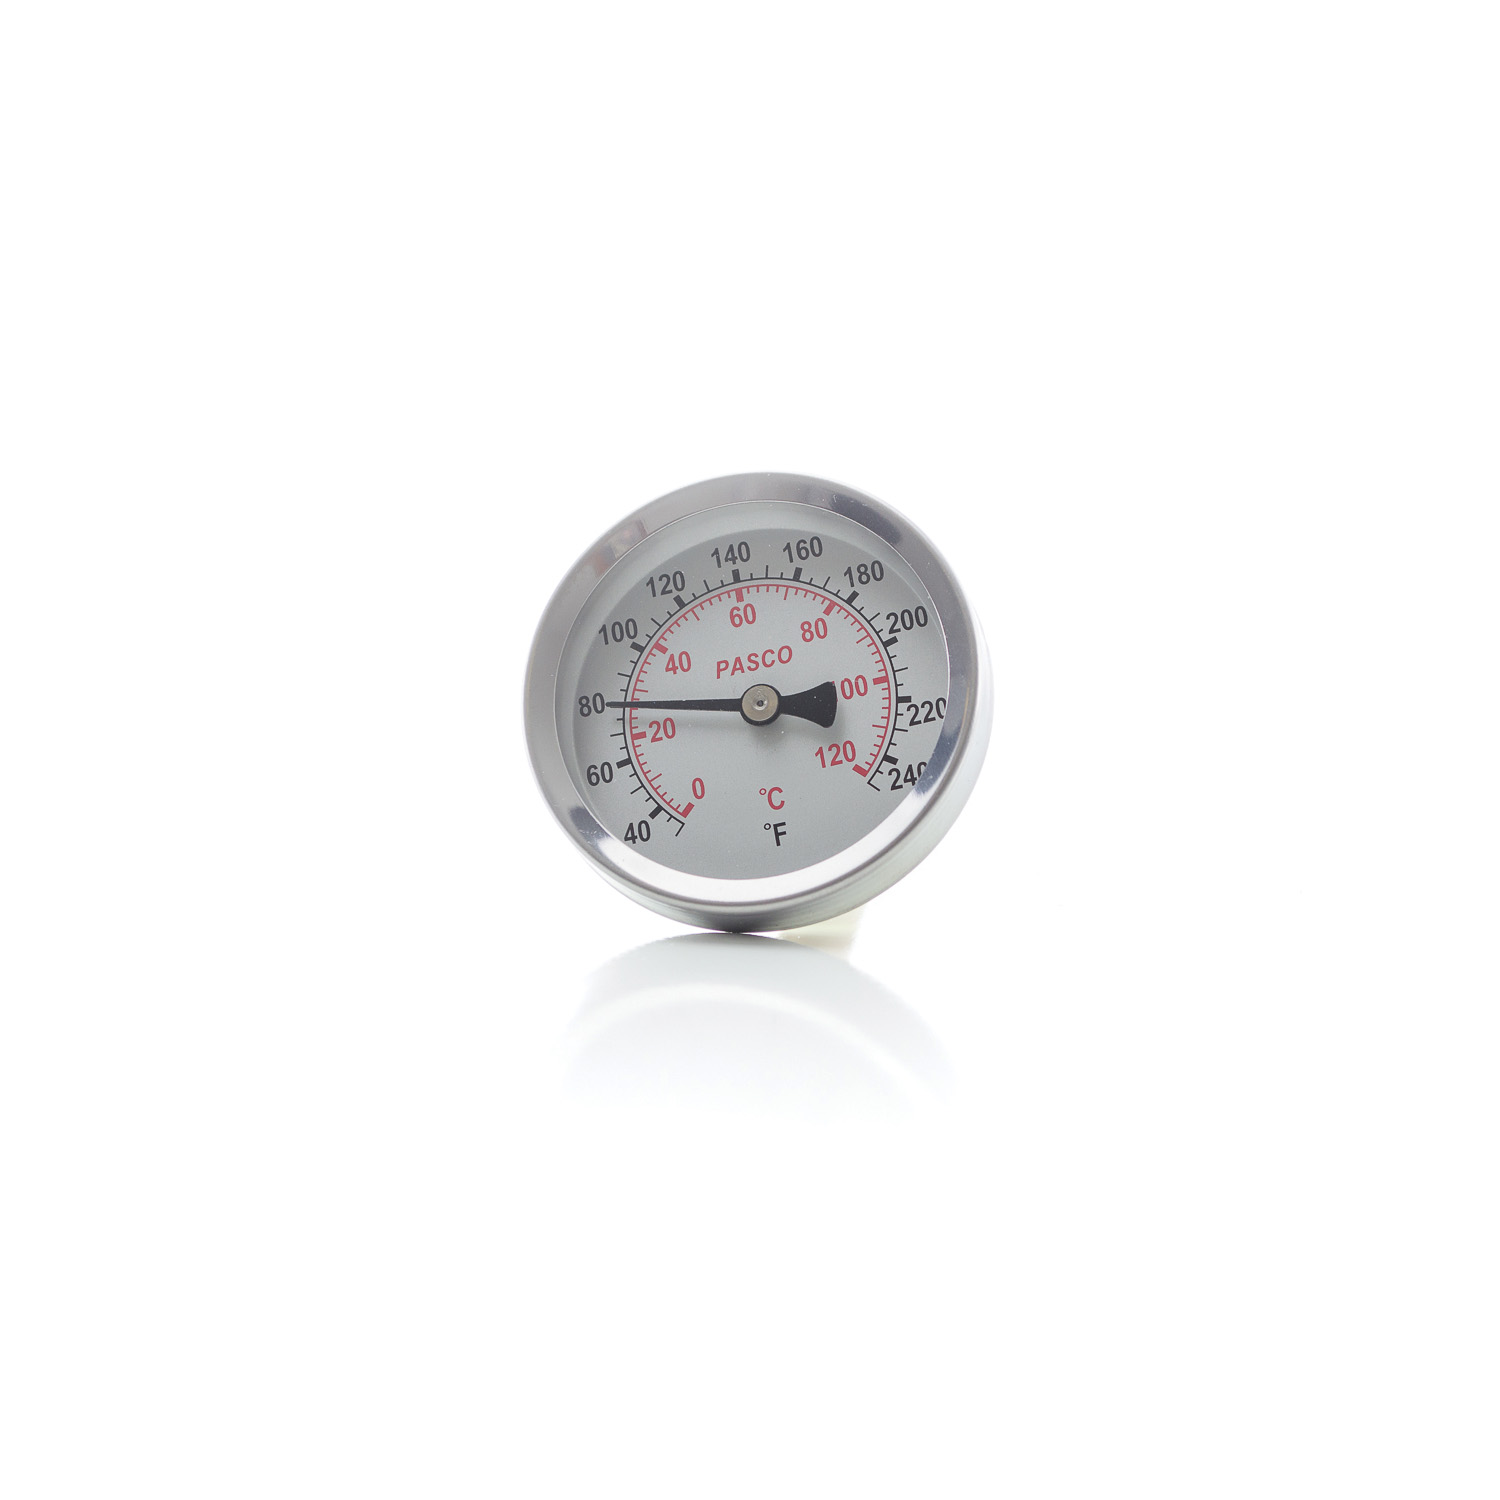 PASCO 1449 Economical Dial Thermometer, 2-1/2 in Dial, 1/2 in MNPT Back Mount Connection, 40 to 250 deg F